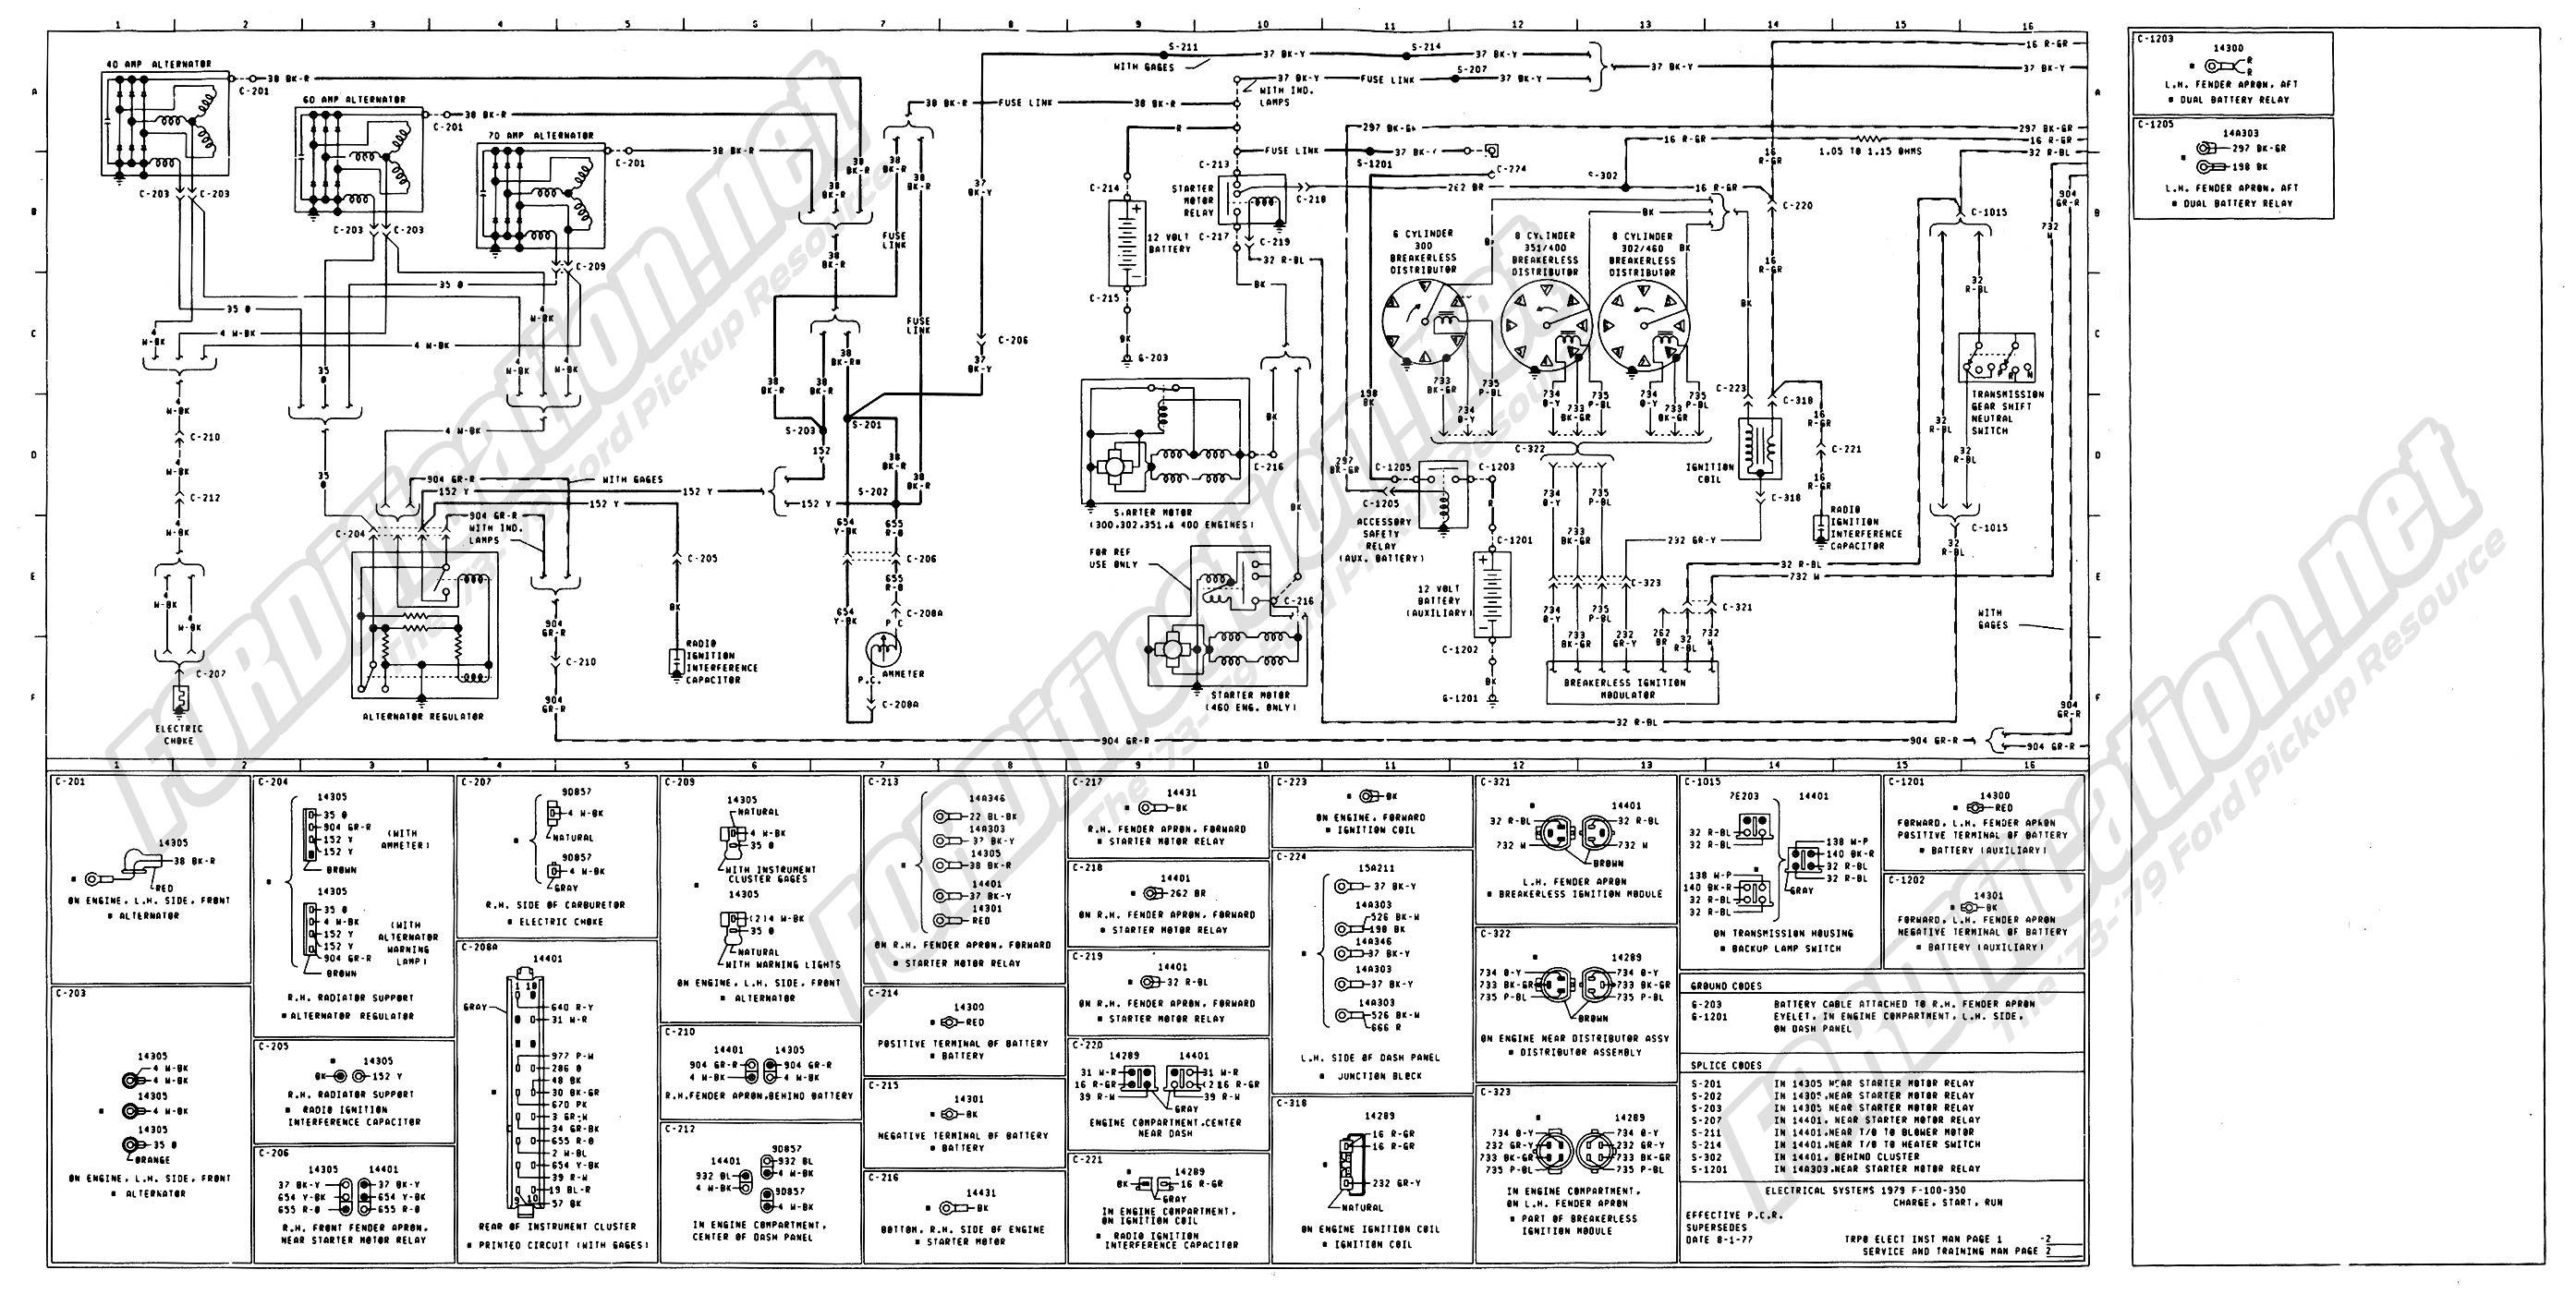 1988 Ford E150 Wiring Diagram Will Be A Thing 1990 F600 1979 Dump Truck Enthusiasts Forums Econoline E 450